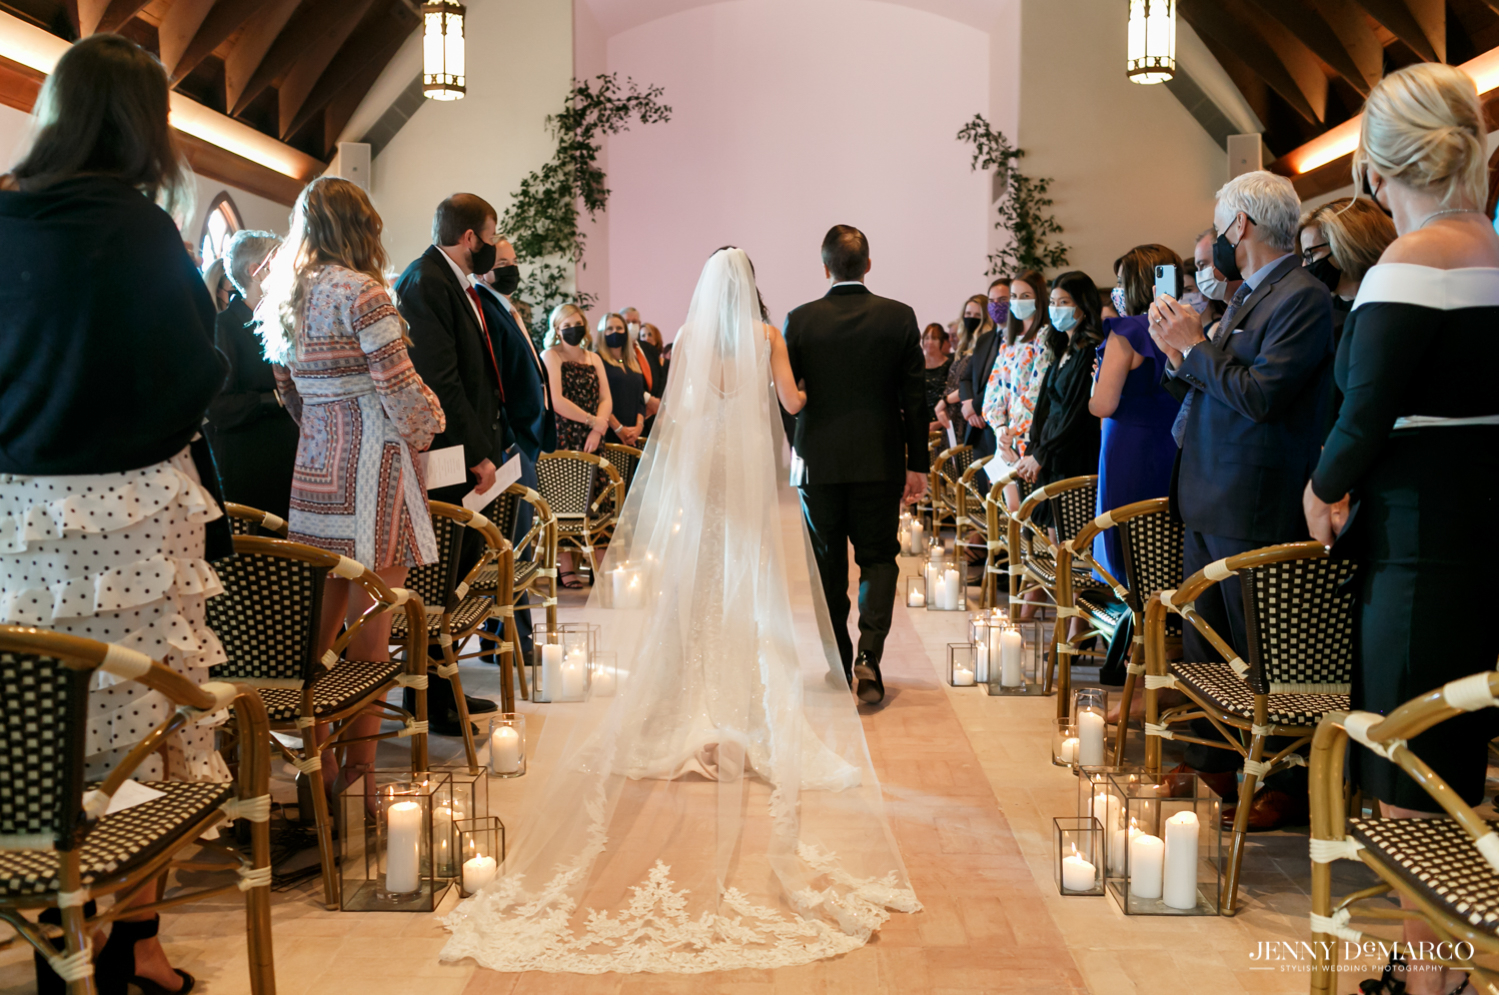 father of the bride walking his daughter down the aisle as her lace veil flows behind her